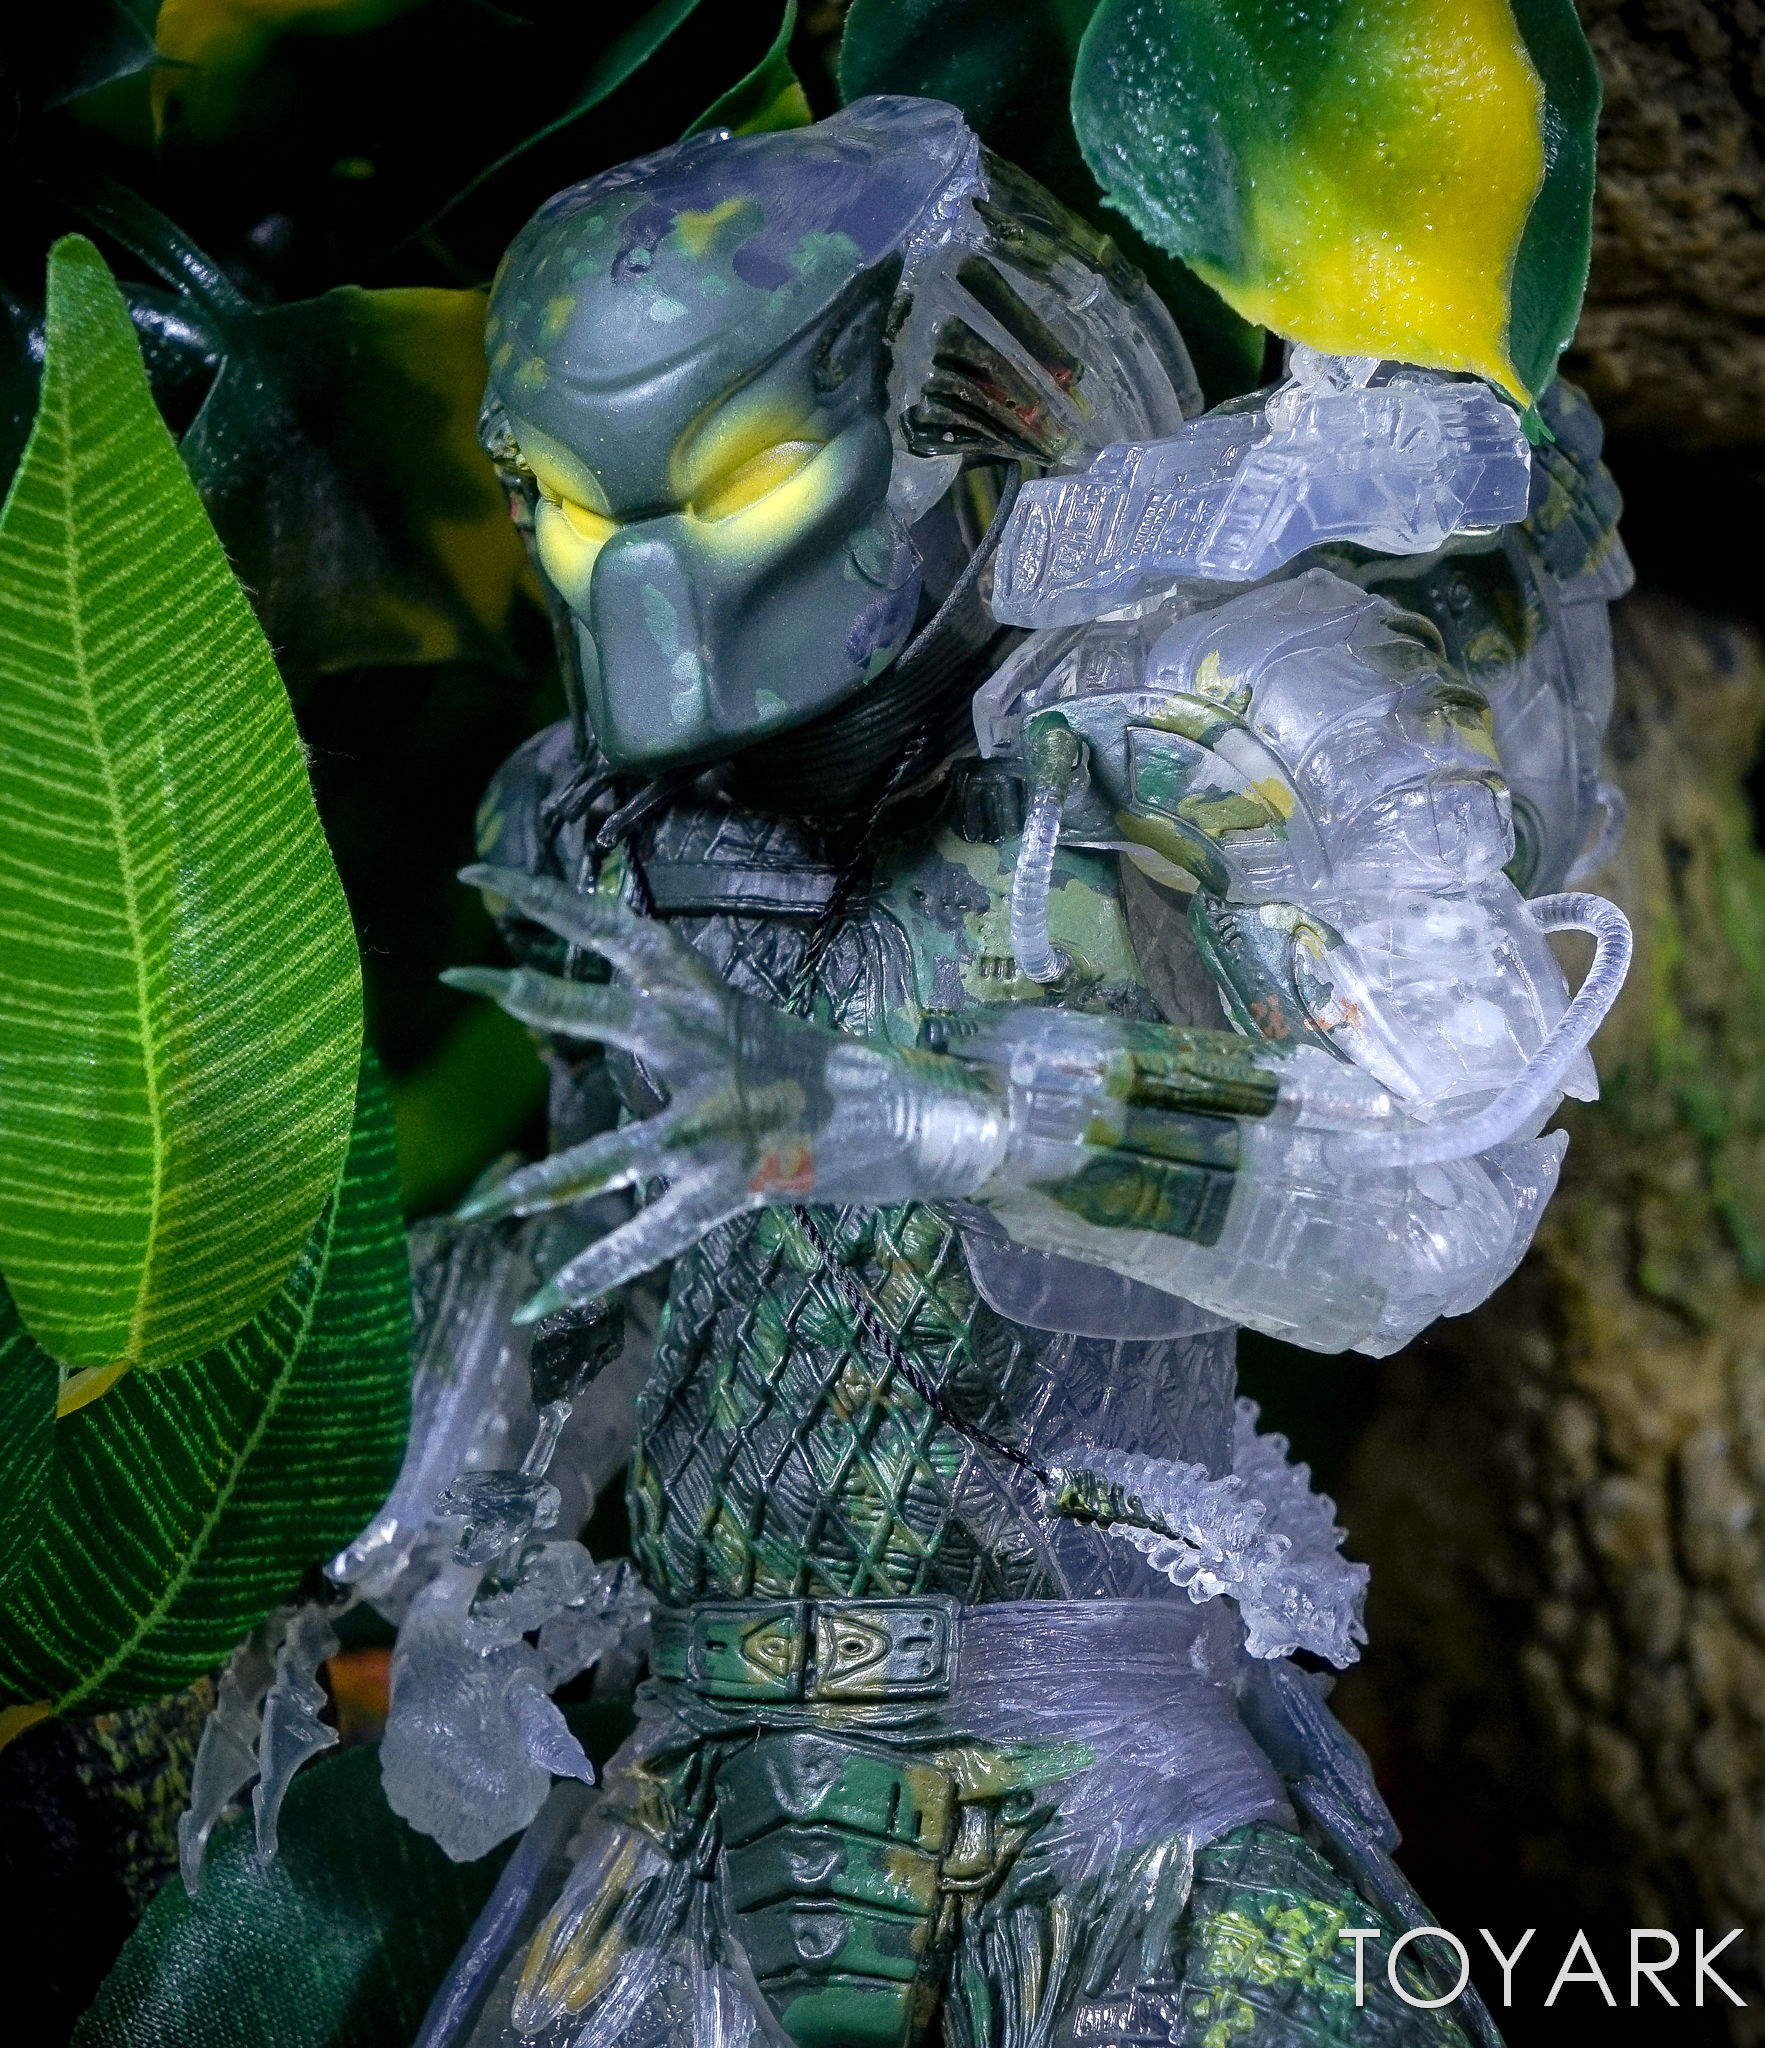 http://news.toyark.com/wp-content/uploads/sites/4/2017/03/NECA-Jungle-Demon-Predator-025.jpg